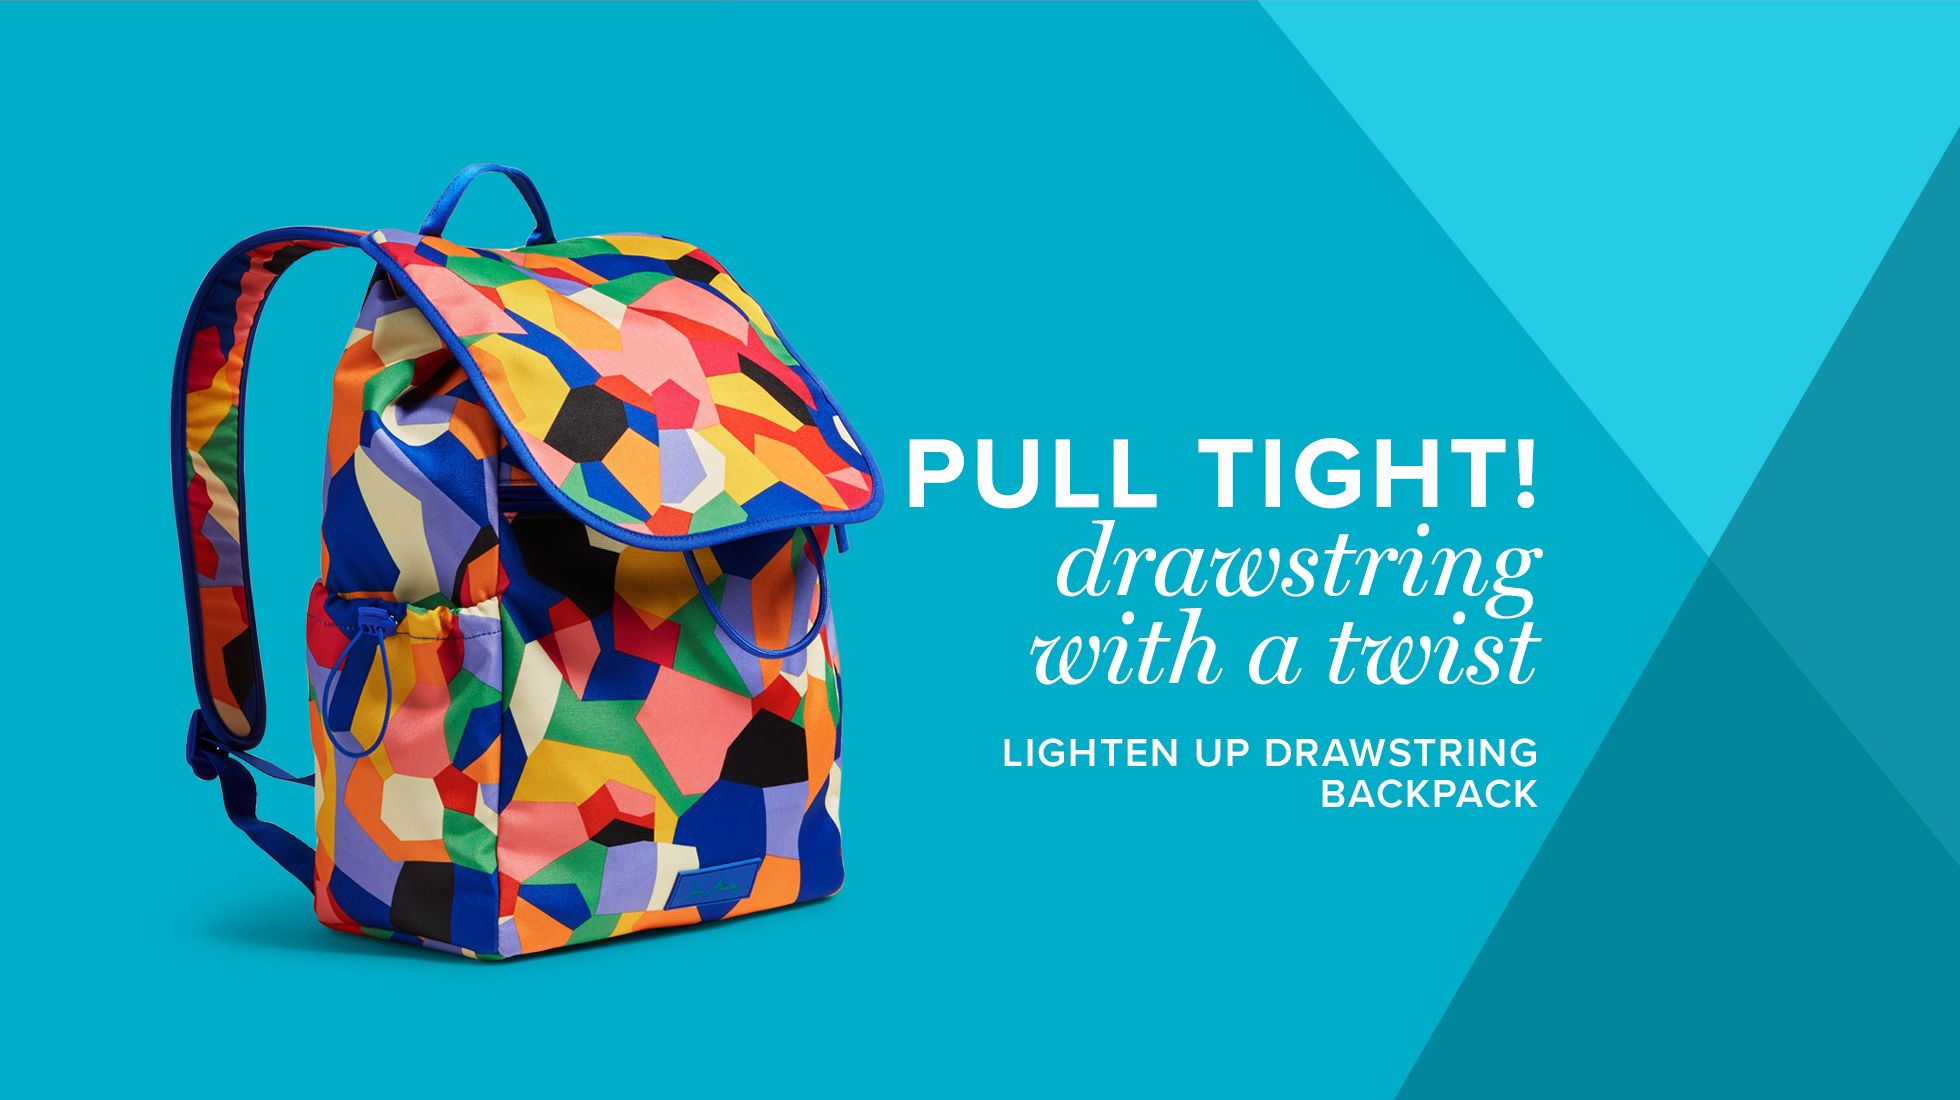 Lighten Up Drawstring Backpack